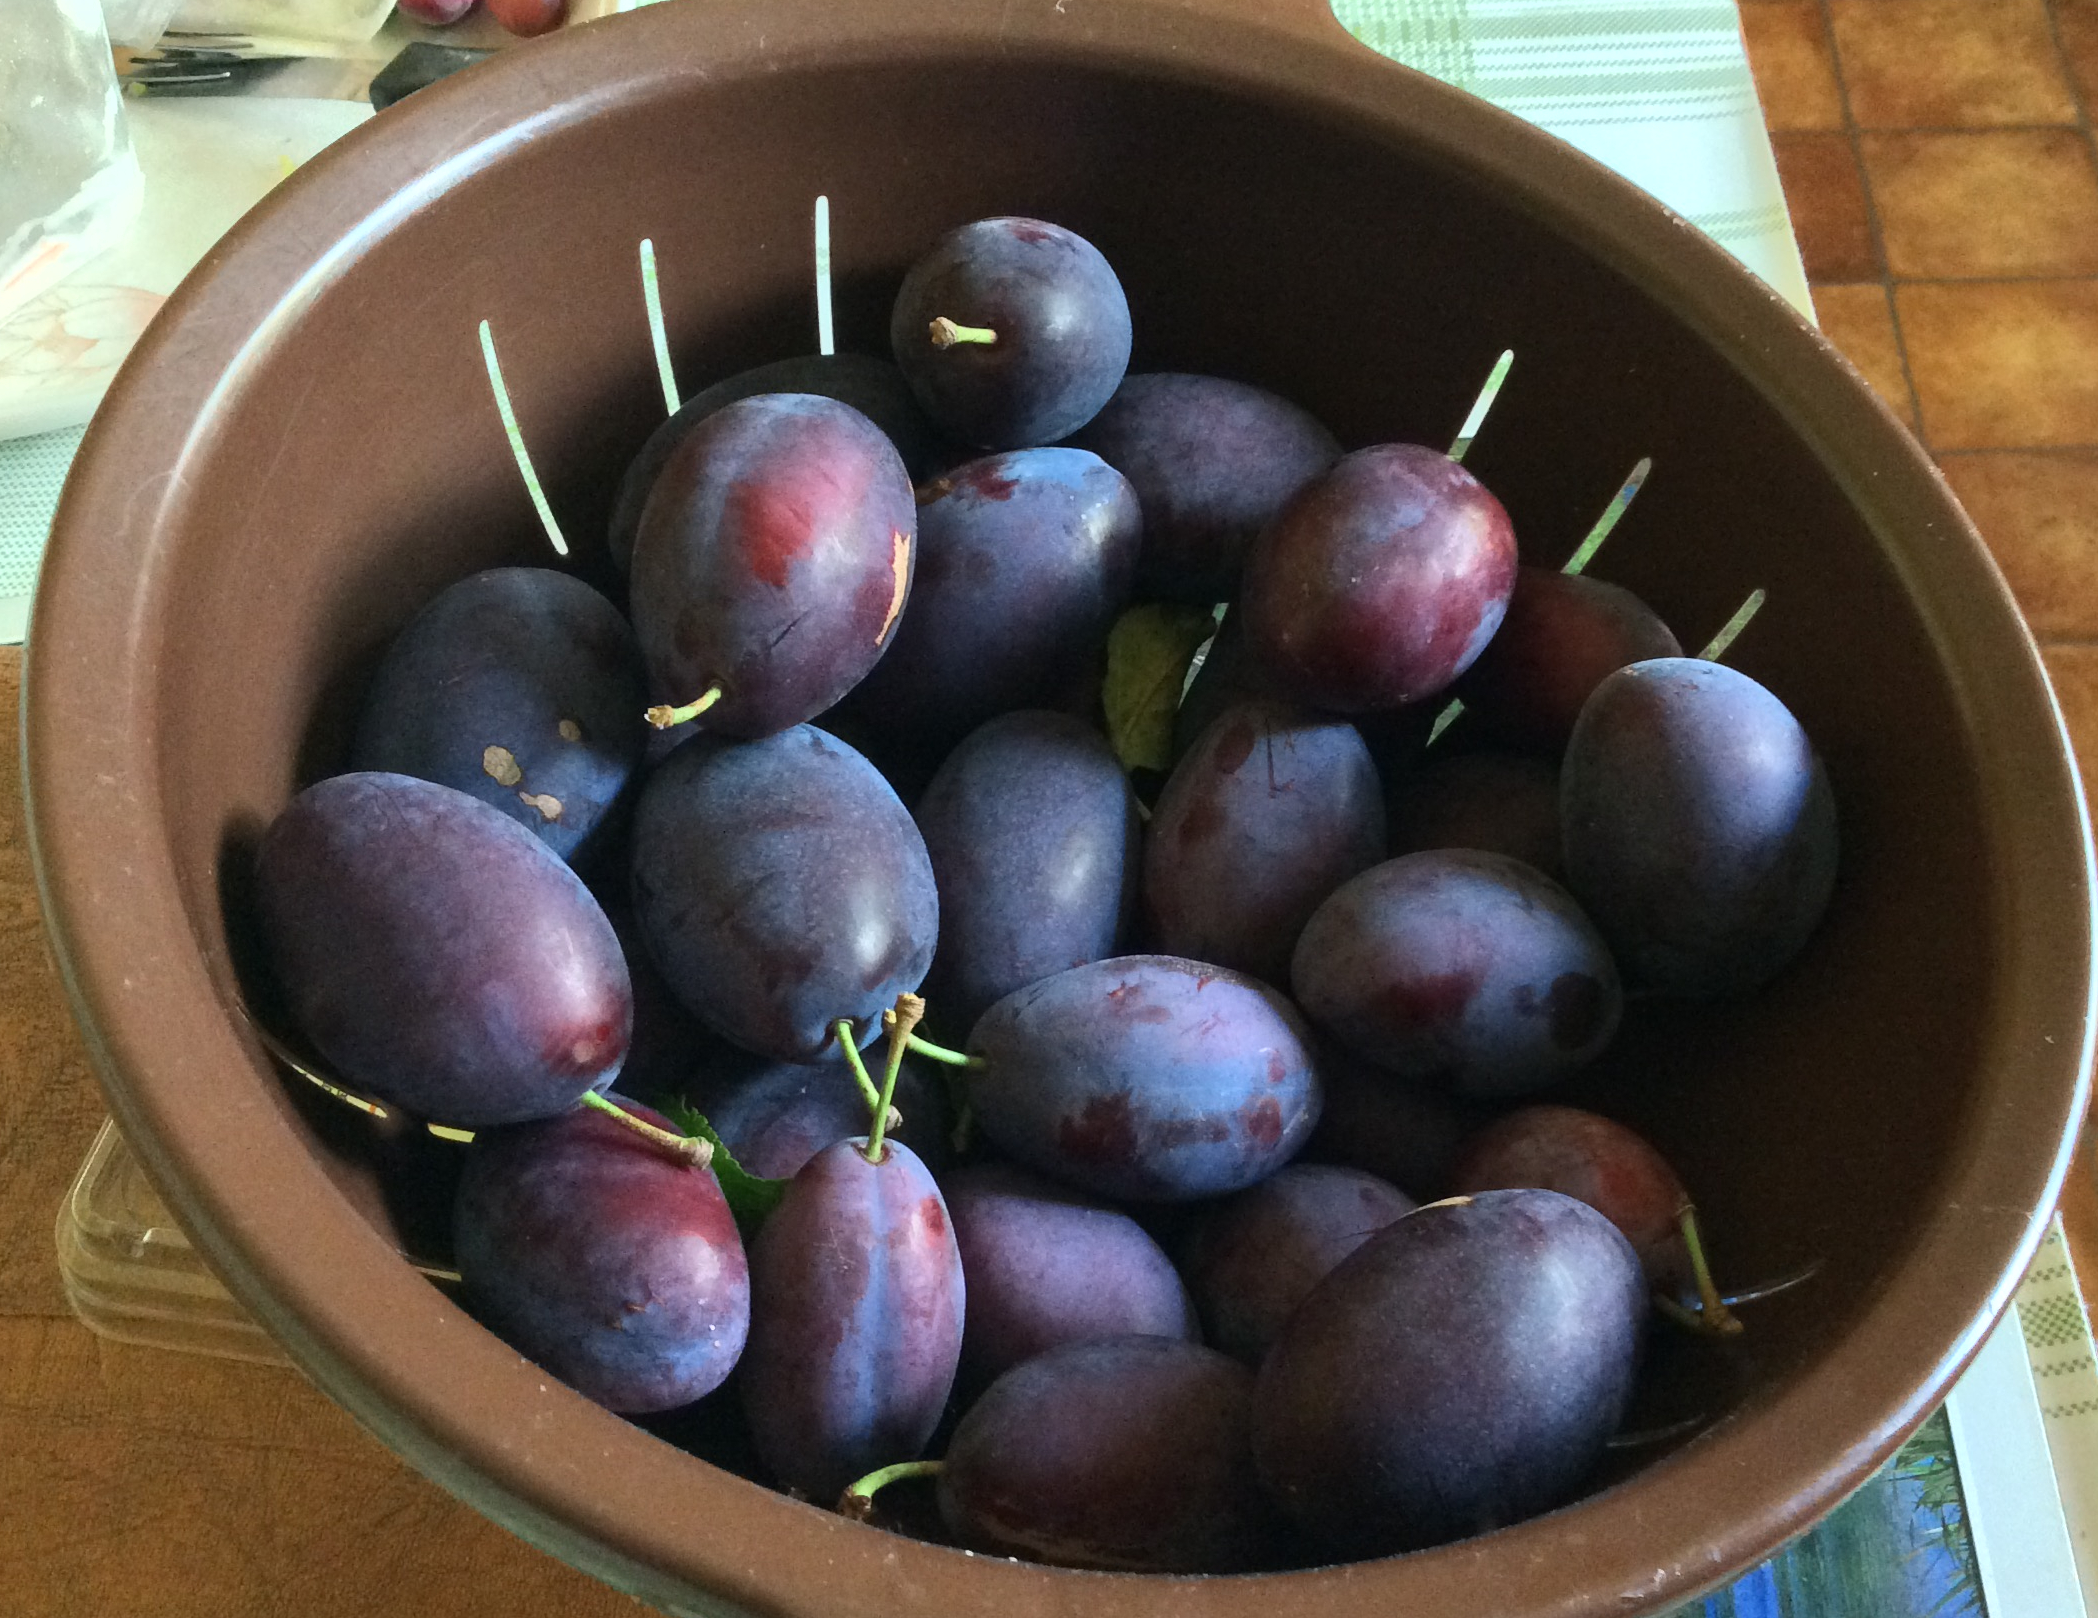 A bowl of ripe damsons